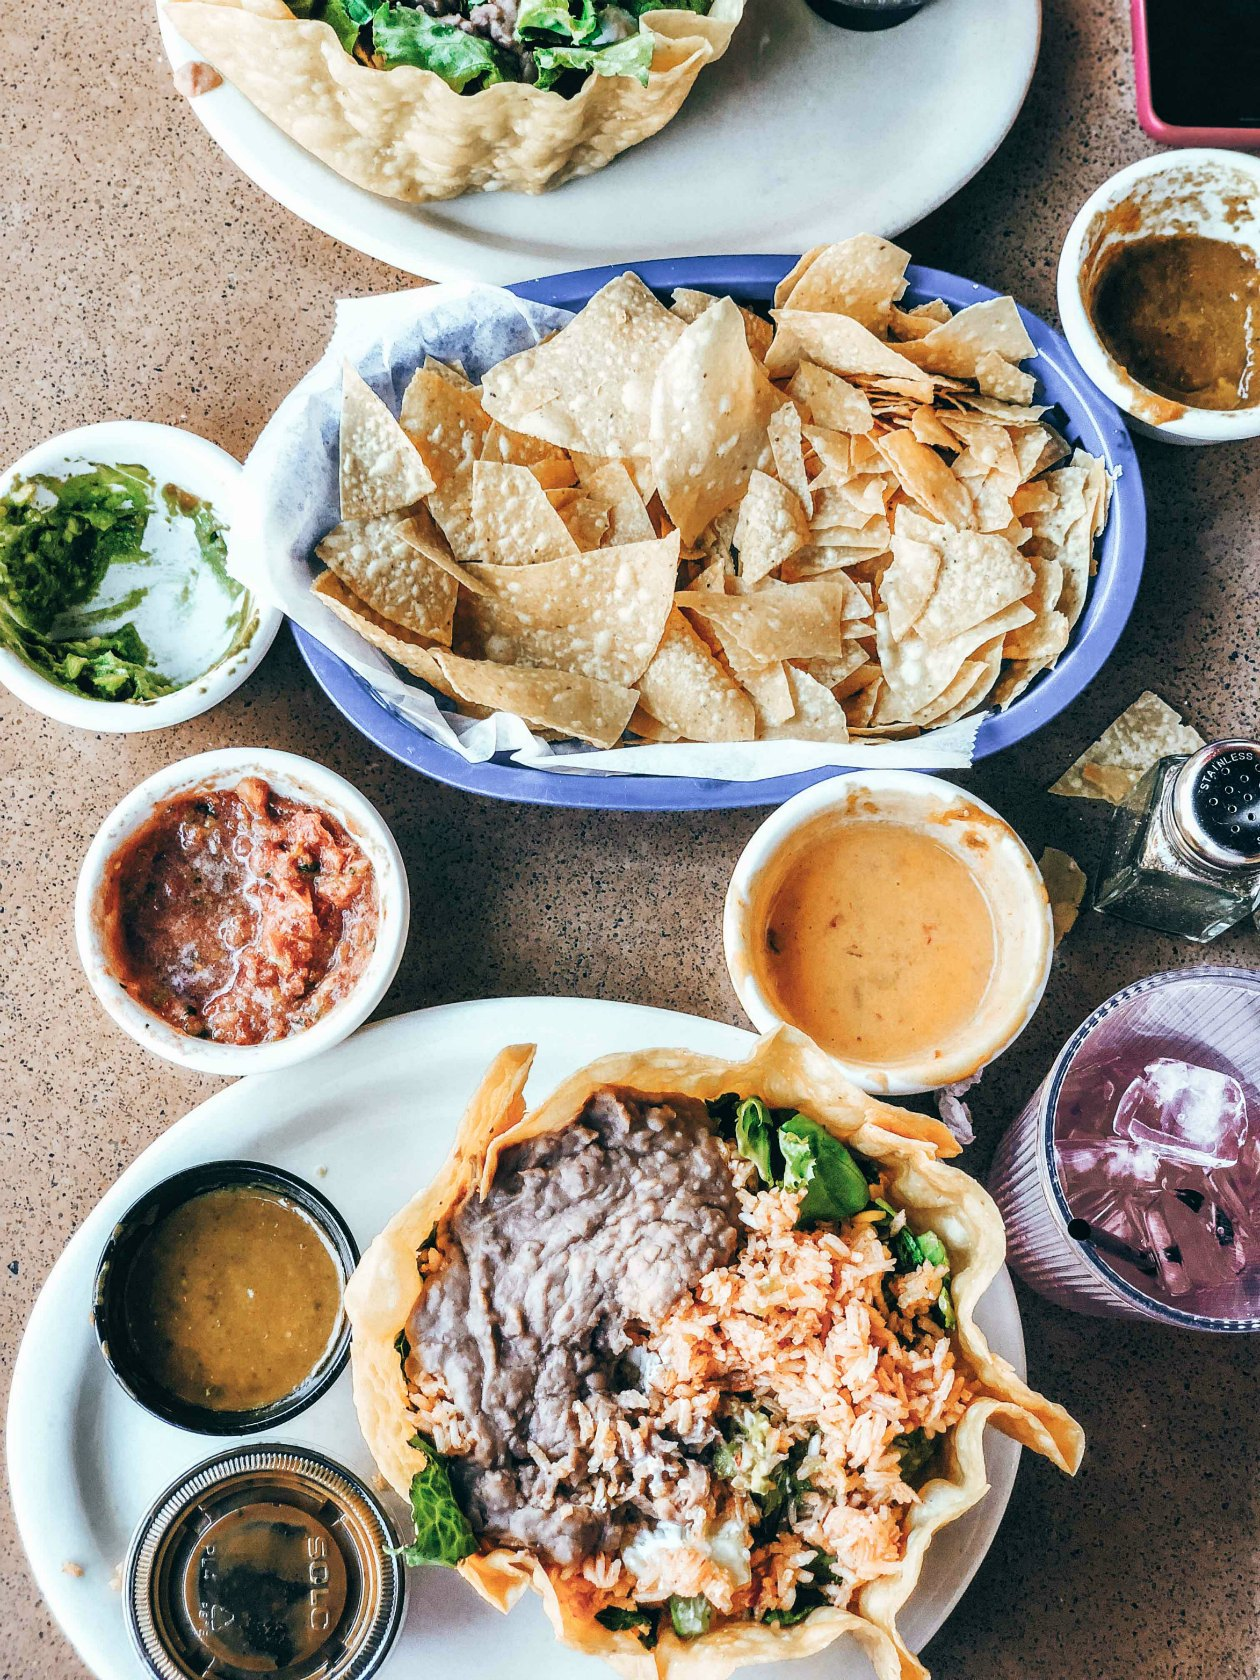 Casa rio Restaurant Austin - A Day in Austin and San Antonio -Attractions, Where to Eat and What to Wear featured by popular Ohio travel blogger, Dreaming Loud